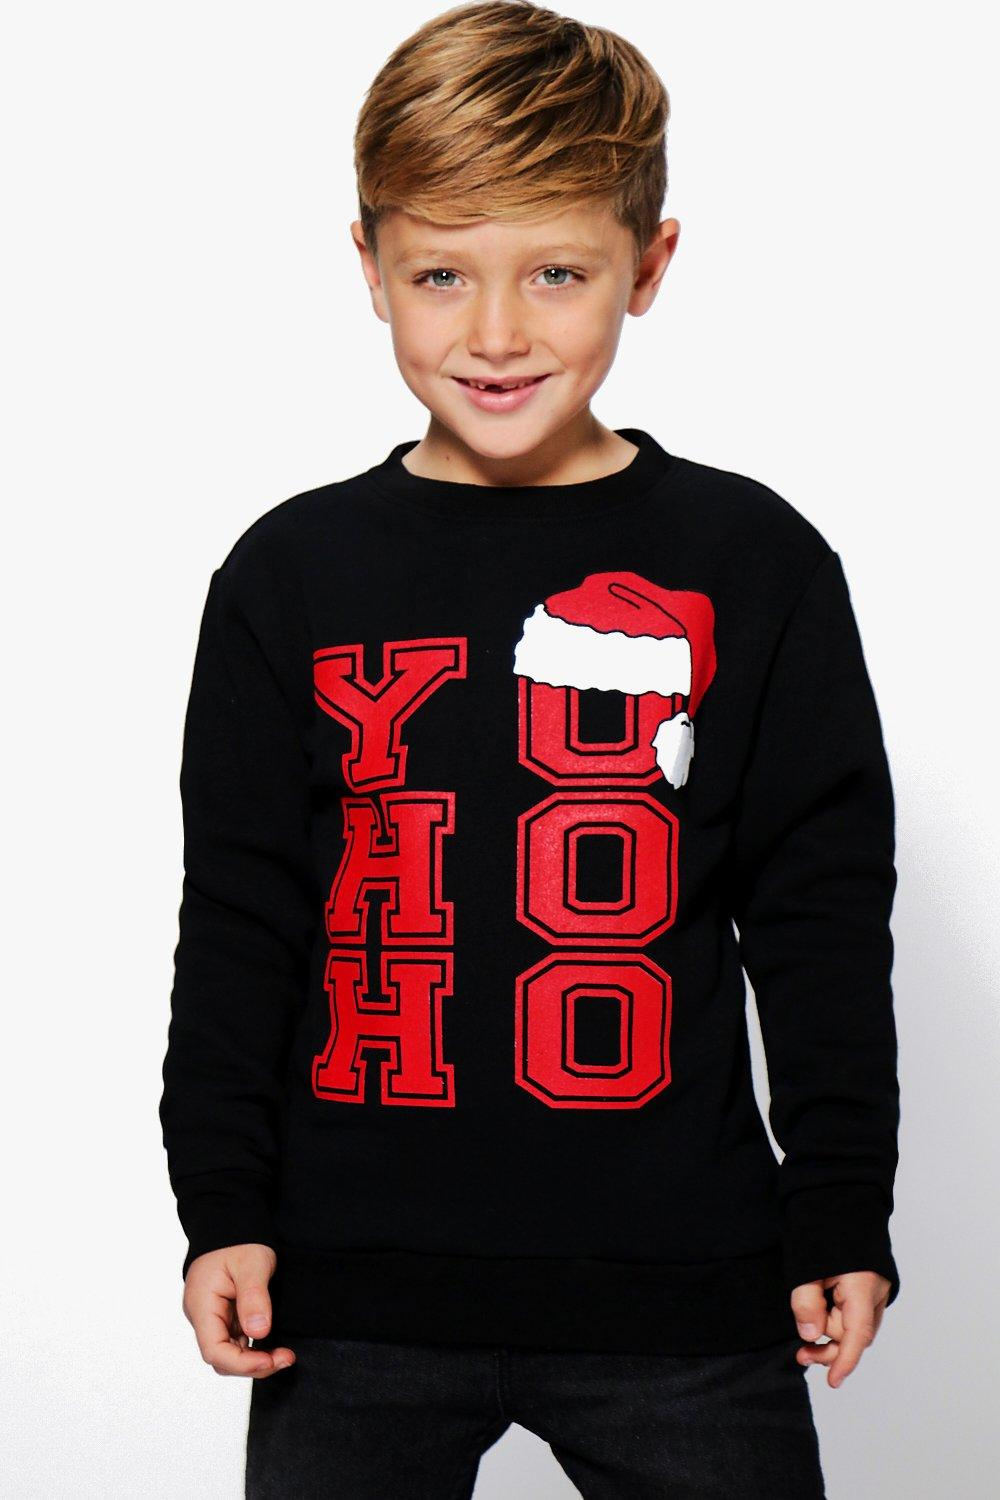 Boys Yo Ho Ho Christmas Jumper